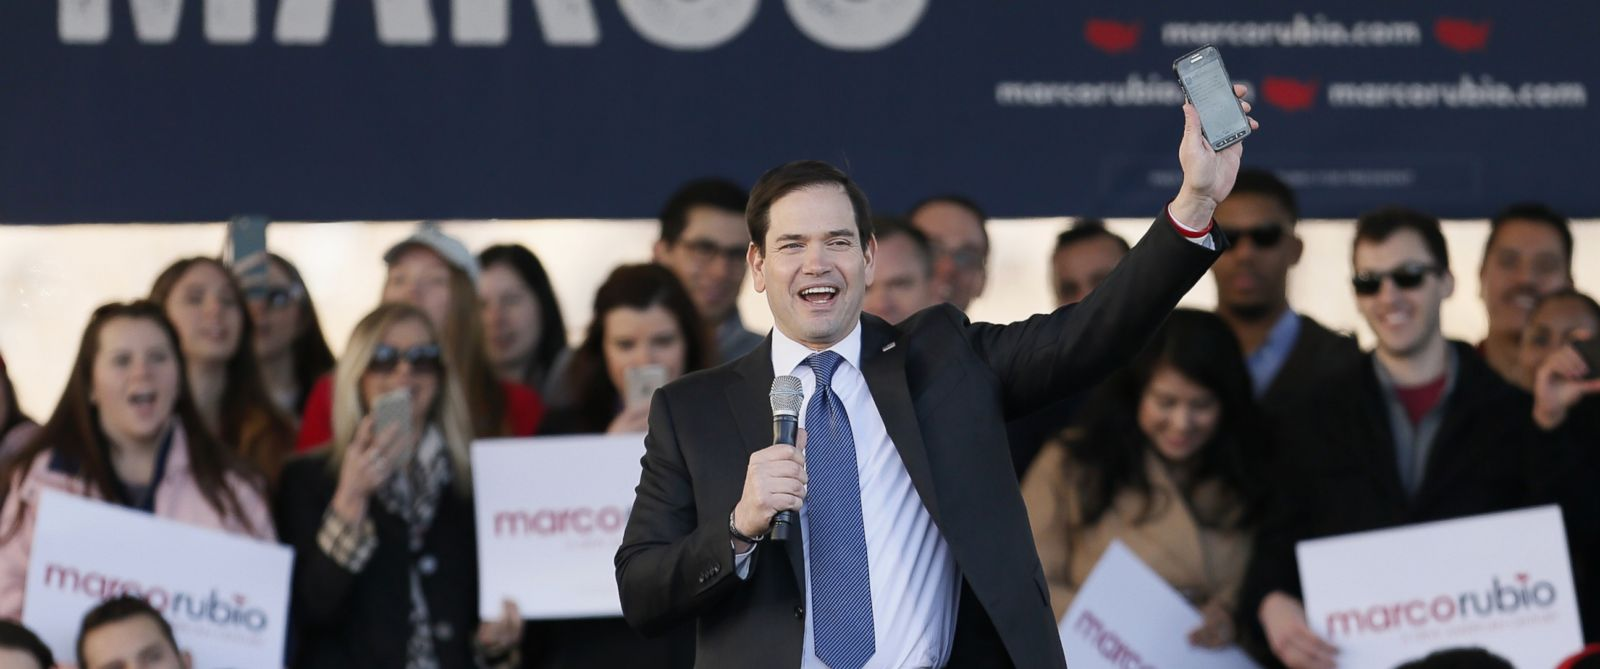 PHOTO: Republican presidential candidate, Sen. Marco Rubio, speaks during a rally, Feb. 26, 2016, in Dallas.